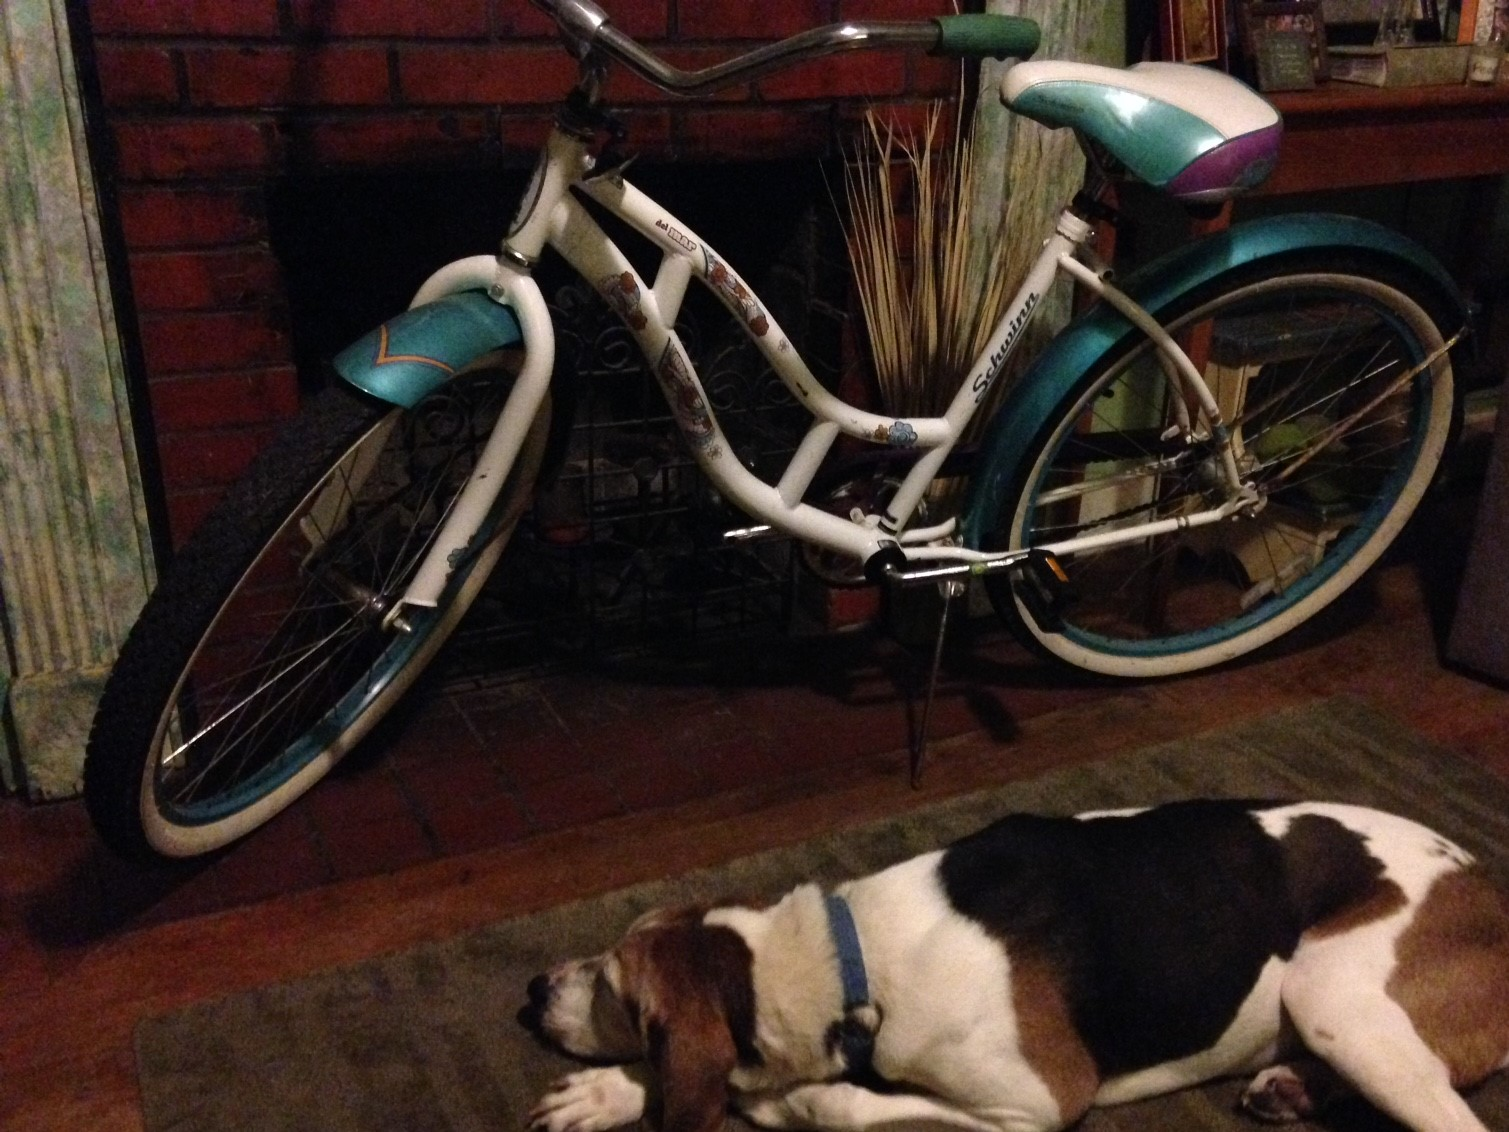 Doodle and bike